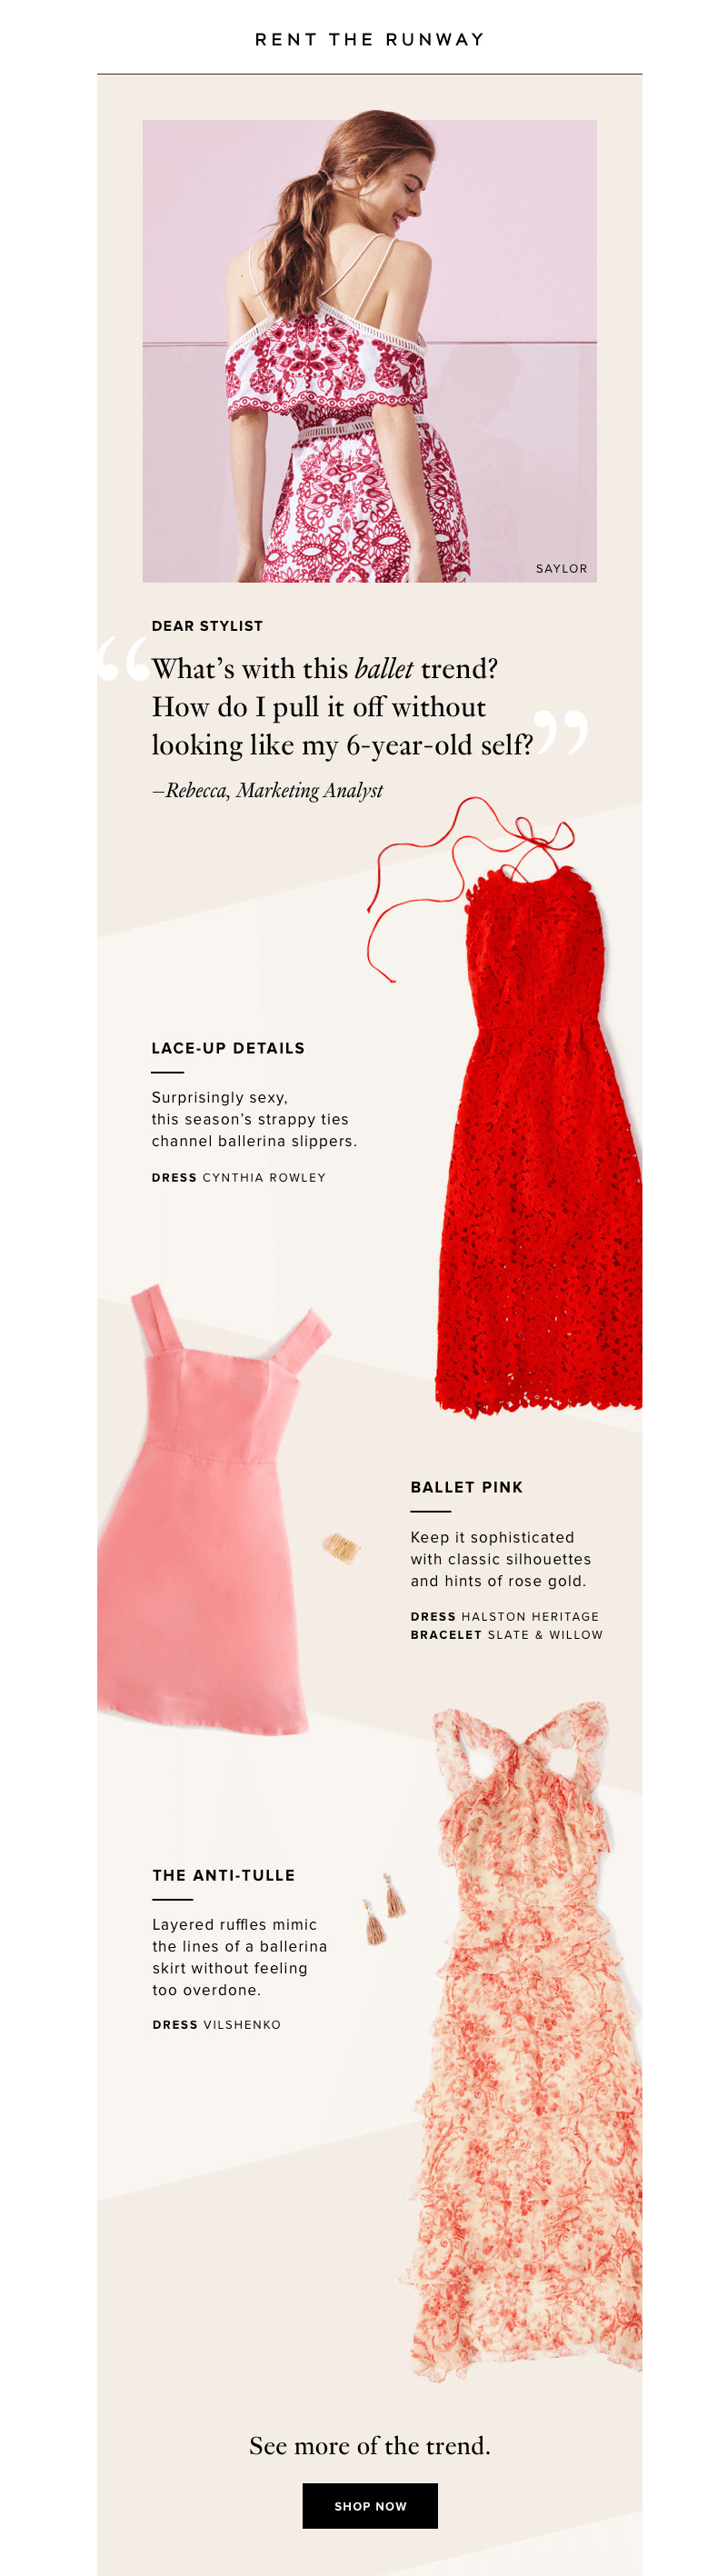 Millennial pink email from Rent the Runway